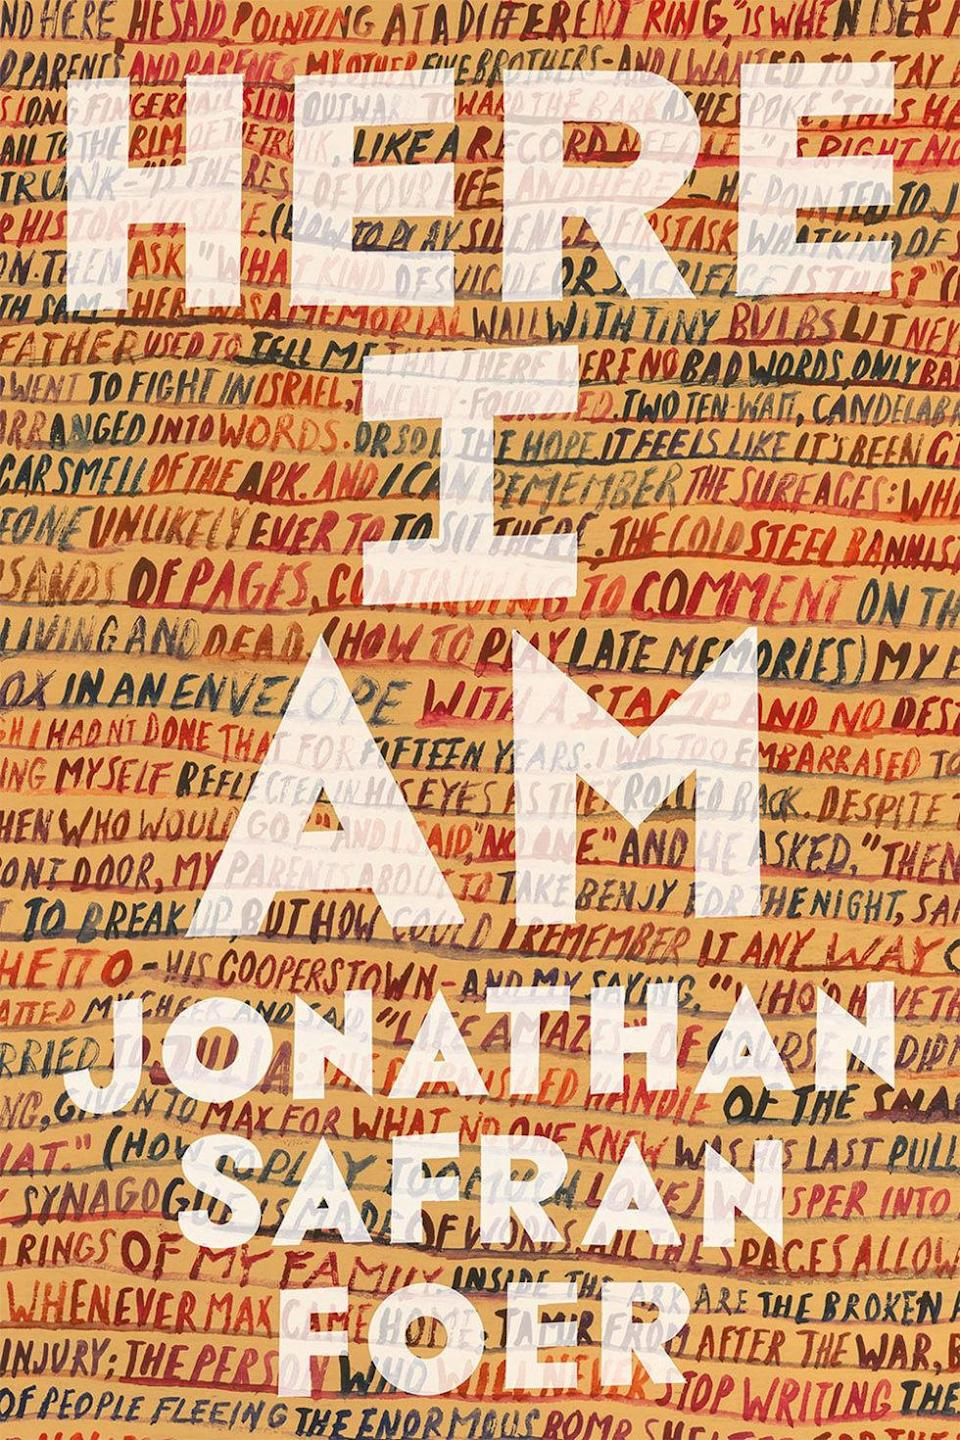 "<p>Jonathan Safran Foer continues in his tradition of kaleidoscopic fiction—his two previous novels, <em>Everything is Illuminated</em> and <em>Extremely Loud and Incredibly Close</em> both explored the many layers of large-scale human tragedy through multifaceted lenses—with a sprawling account of several generations of a single Jewish family navigating its identity in a changing landscape in America and the Middle East. Set primarily in Washington, D.C., <em>Here I Am</em> makes use of multiple narrative media—from digital communication and theater to government documents, Biblical riffs and intimate scenes of private life—to create a quilted, compelling and unmissable portrait of the modern Jewish American experience.</p><p><em>Here I Am</em> by Jonathan Safran Foer, $28, <a rel=""nofollow noopener"" href=""http://www.indiebound.org/book/9780374280024"" target=""_blank"" data-ylk=""slk:indiebound.org"" class=""link rapid-noclick-resp"">indiebound.org</a>.</p>"